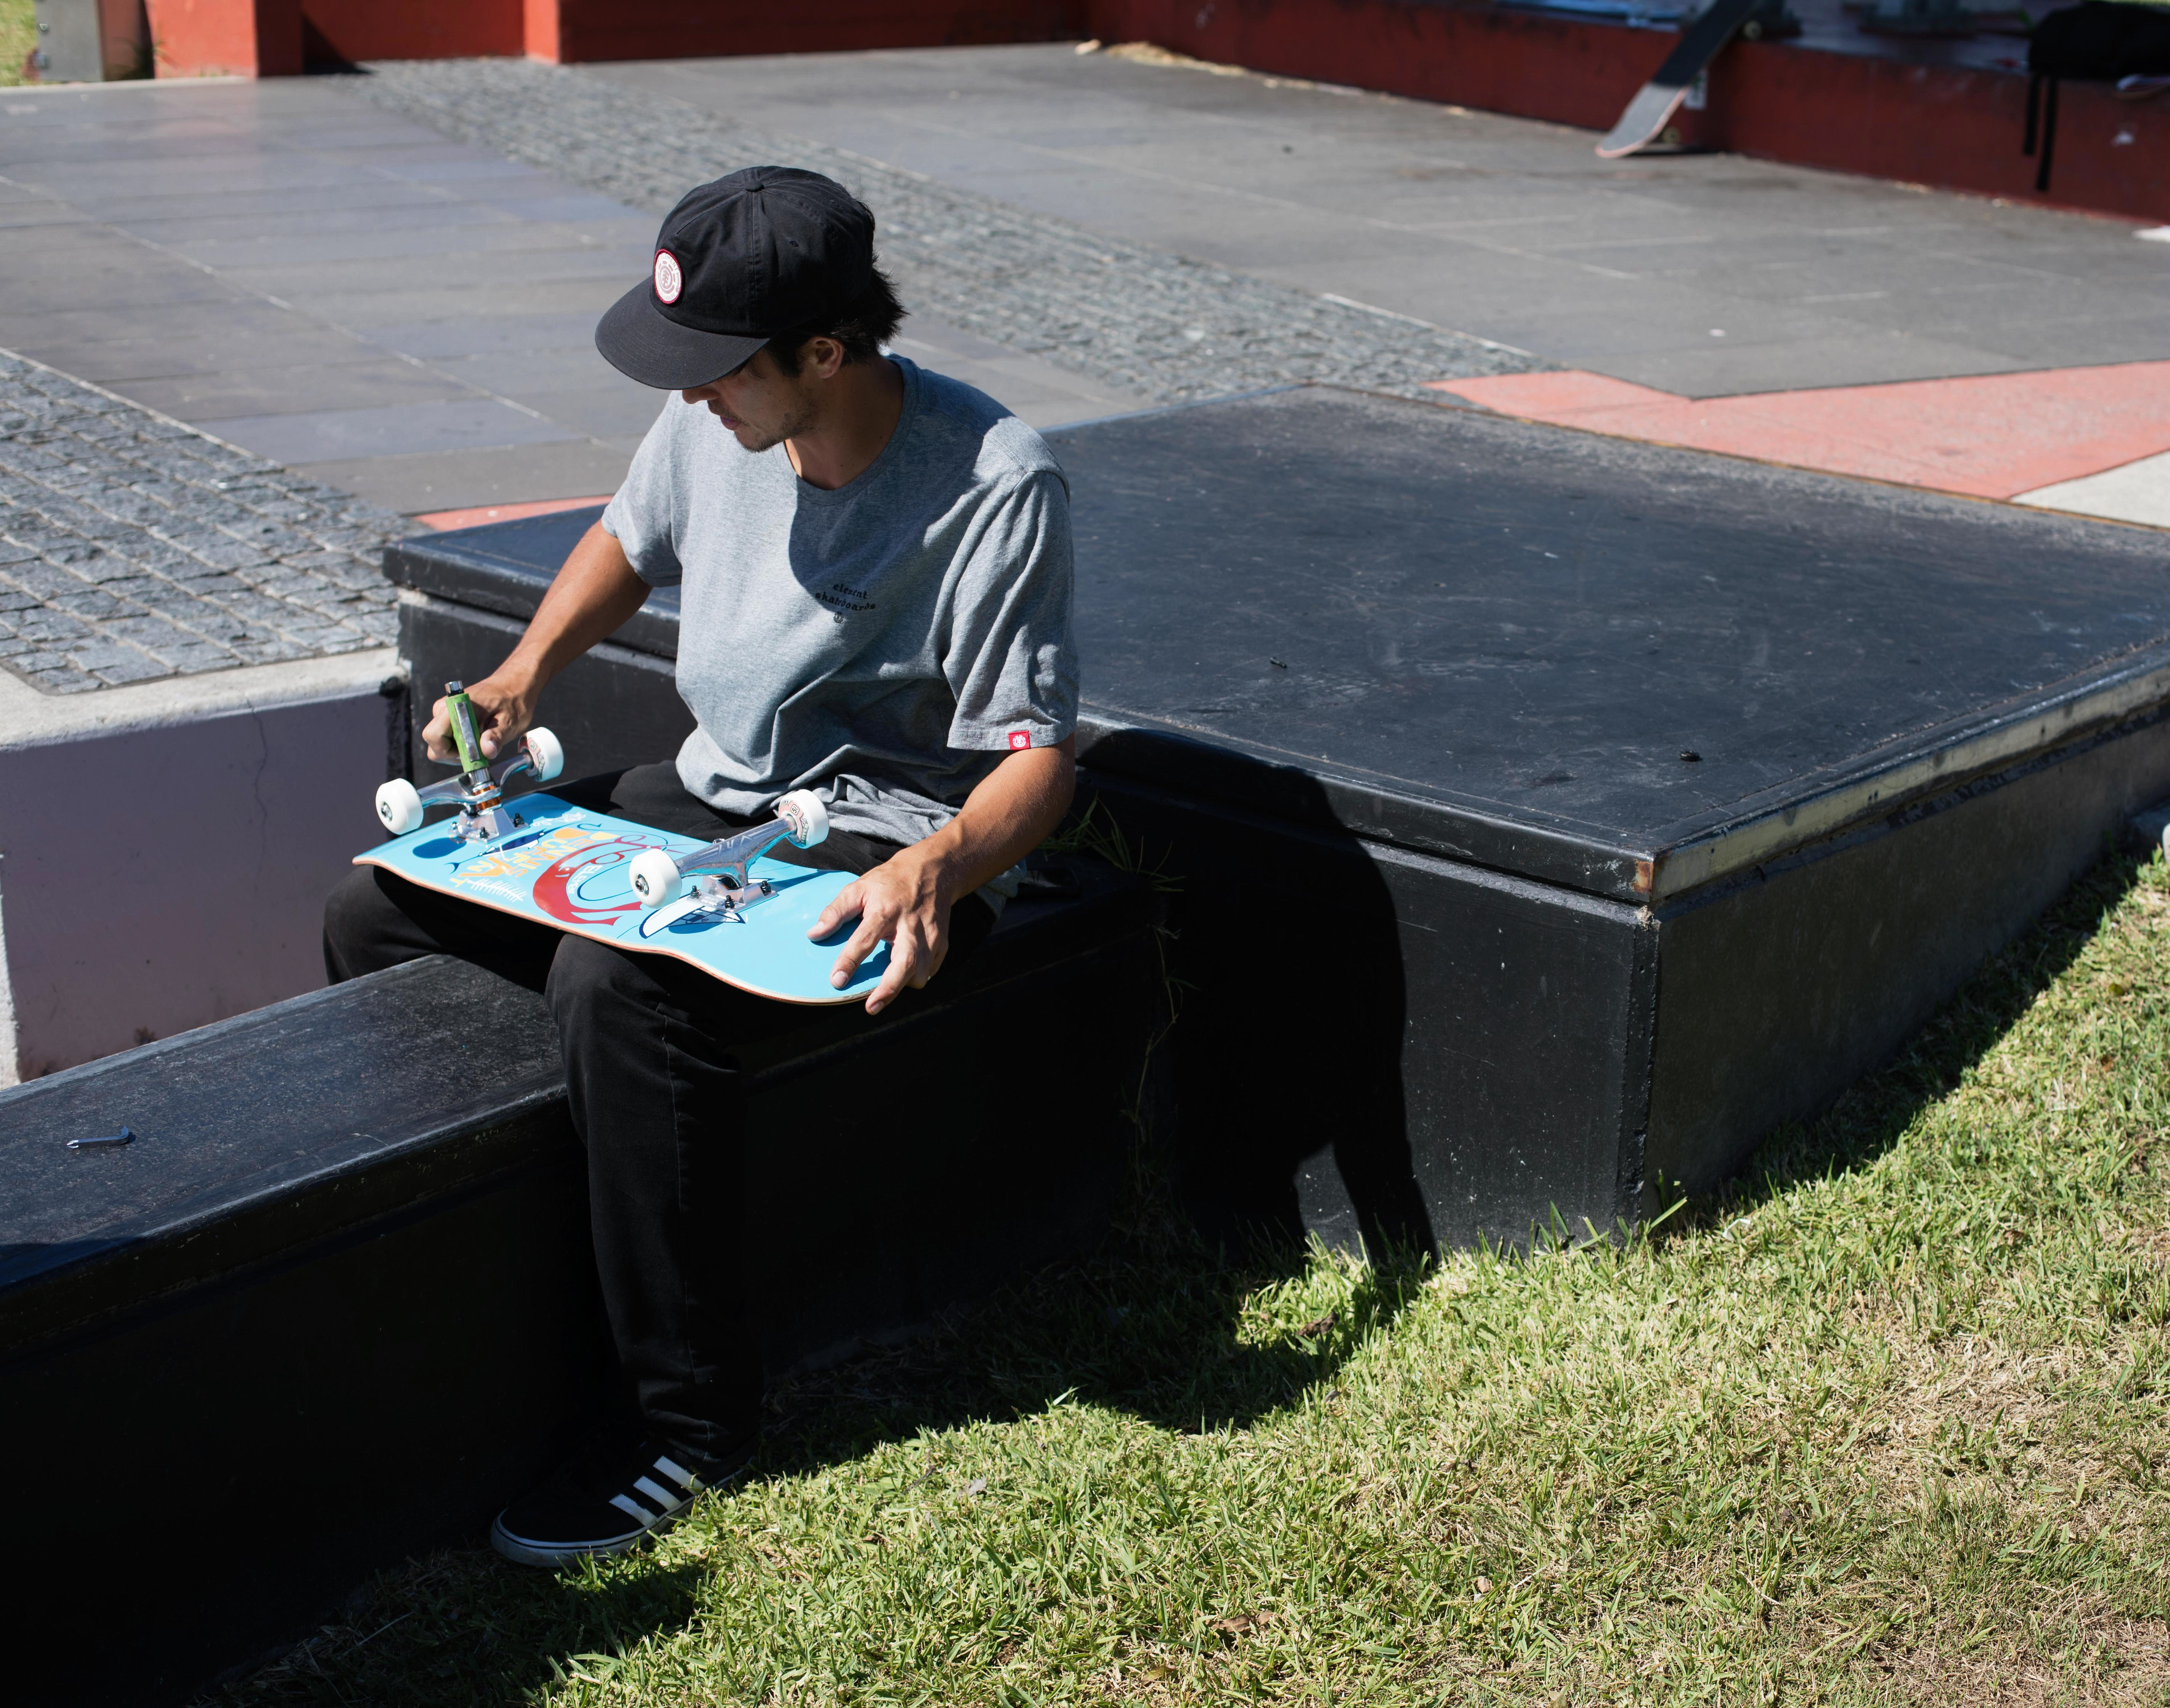 HOW TO SET UP A SKATEBOARD WITH DENNIS DURRANT